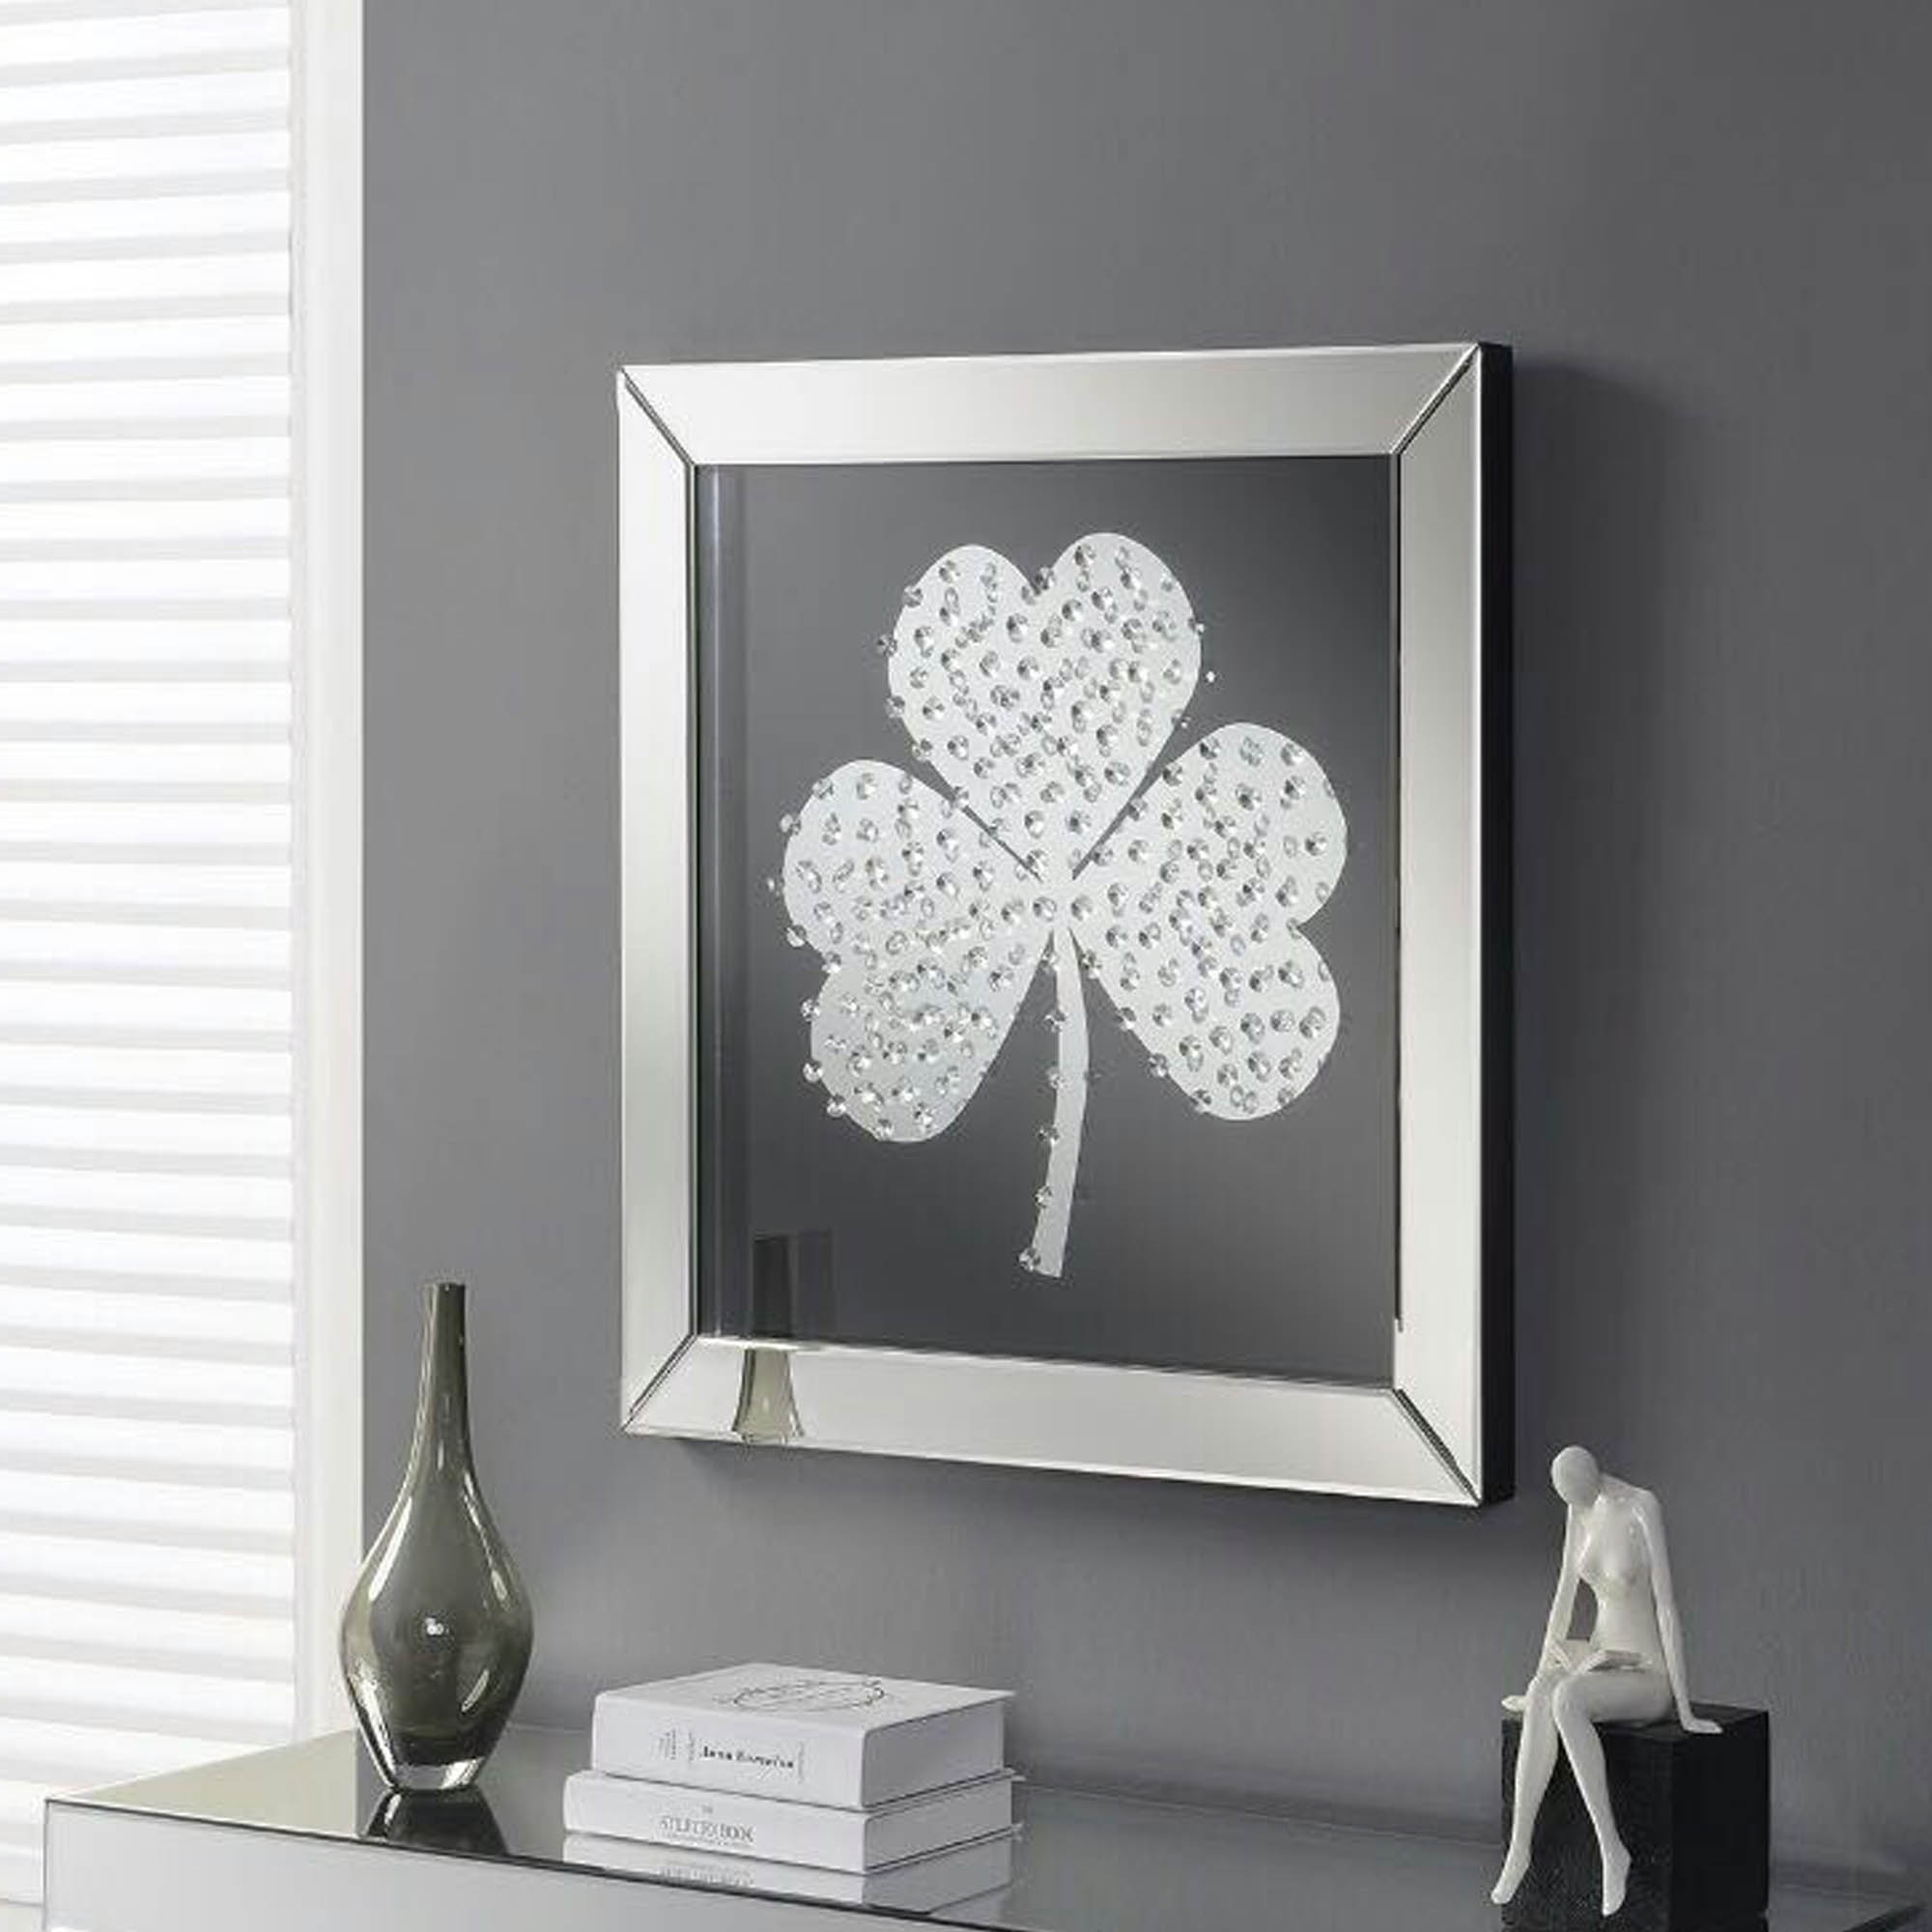 Shamrock Mirrored Wall Art | Wall Art | Homesdirect365 Regarding Most Recently Released Mirrored Wall Art (Gallery 2 of 20)